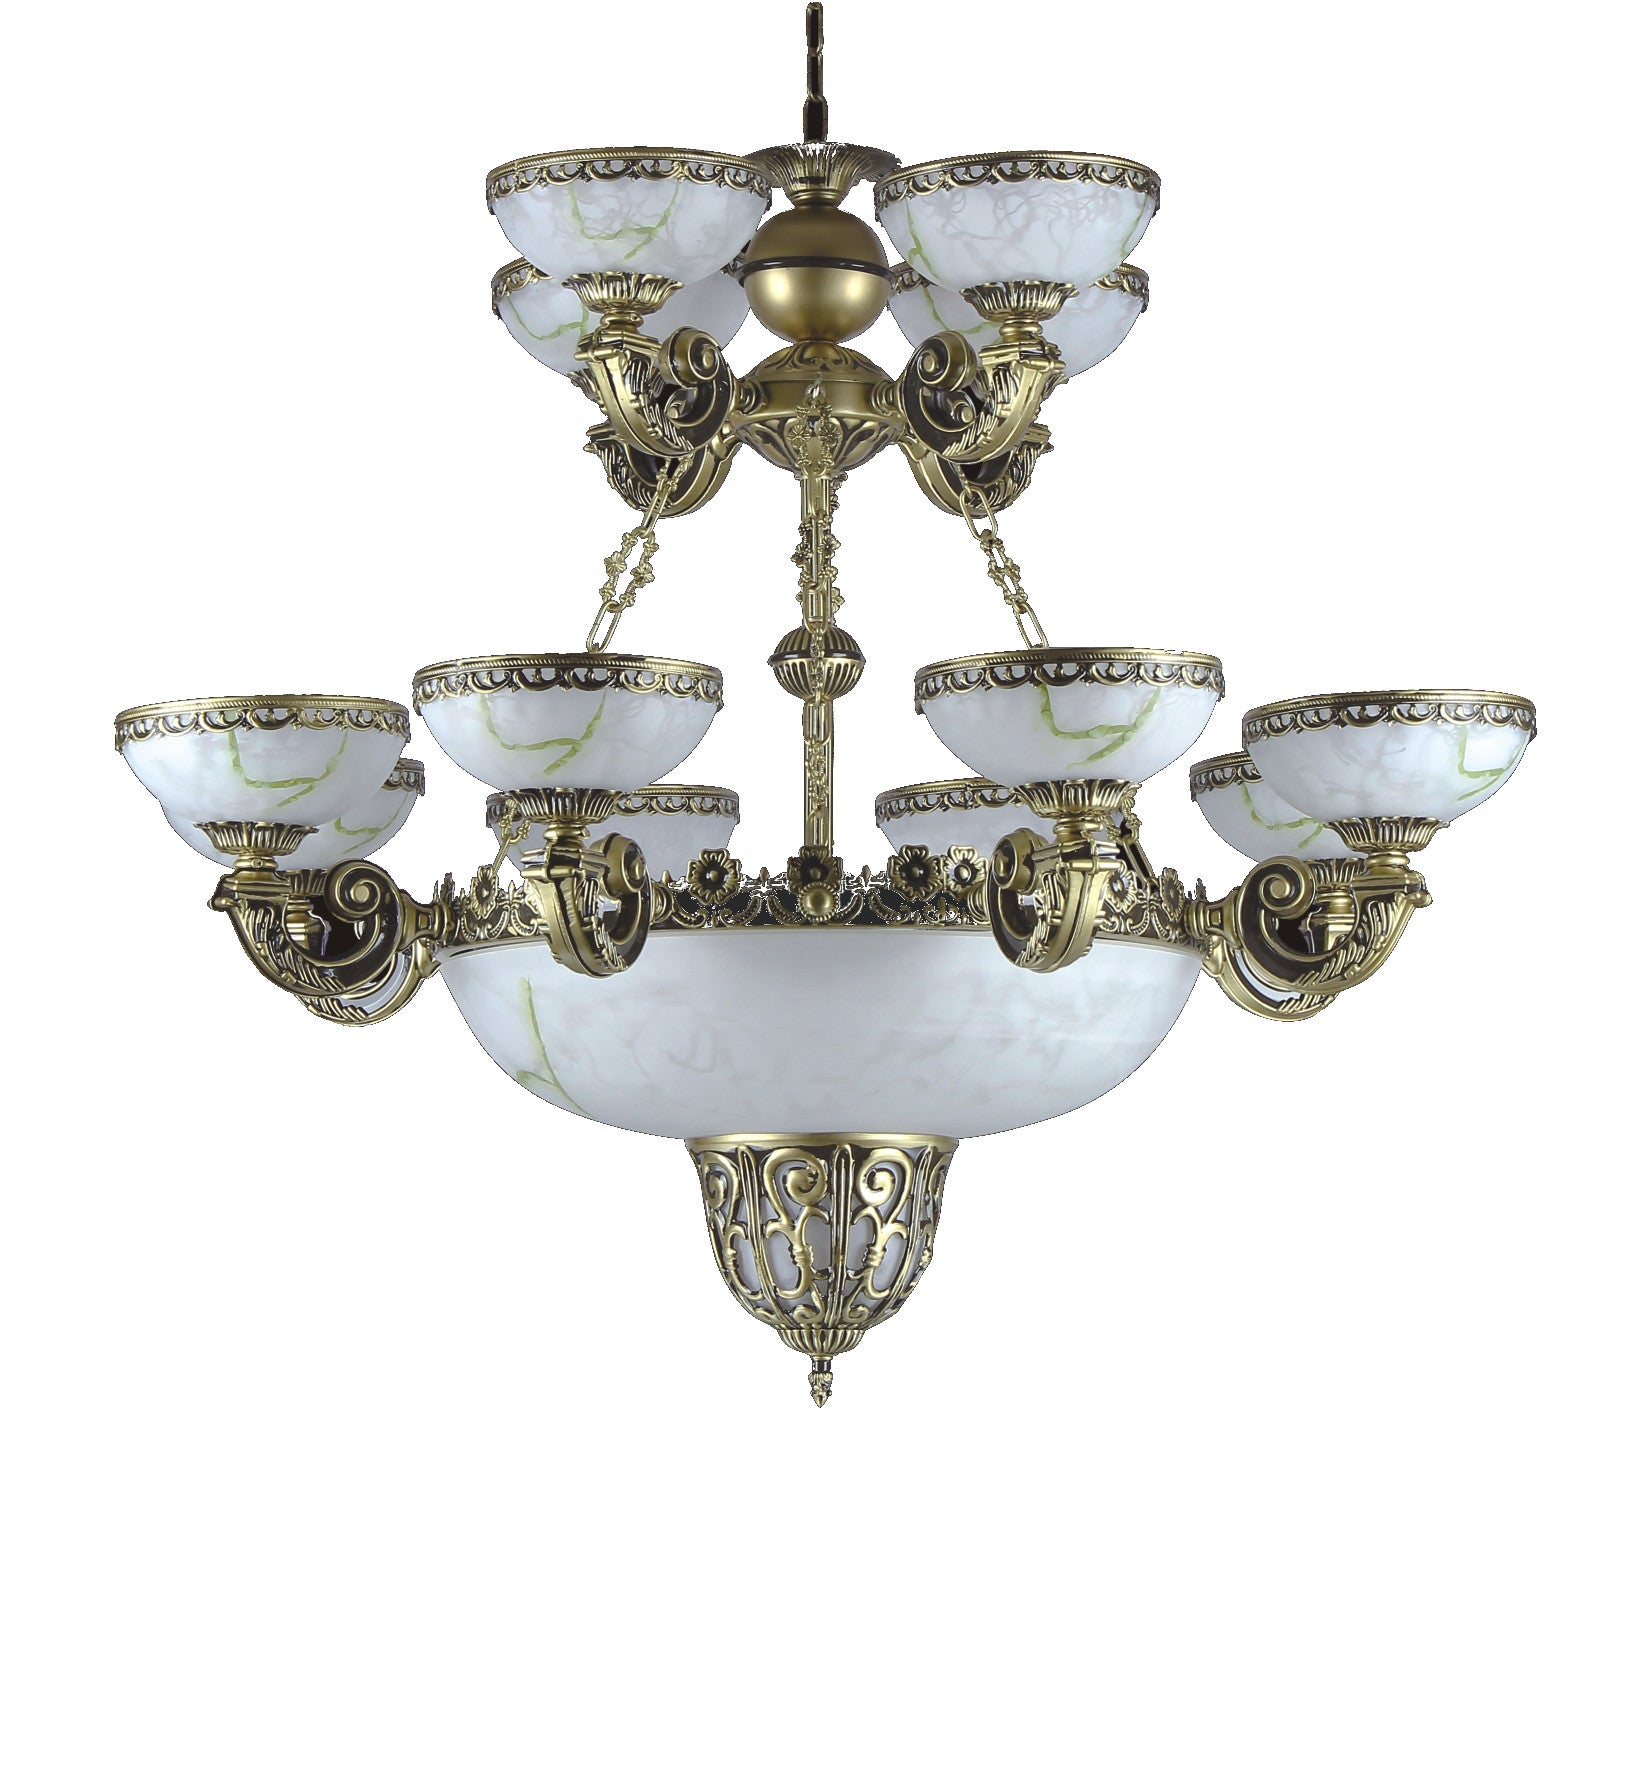 Alabaster Chandelier 073 8 4 3 Light – Chandeliers Today